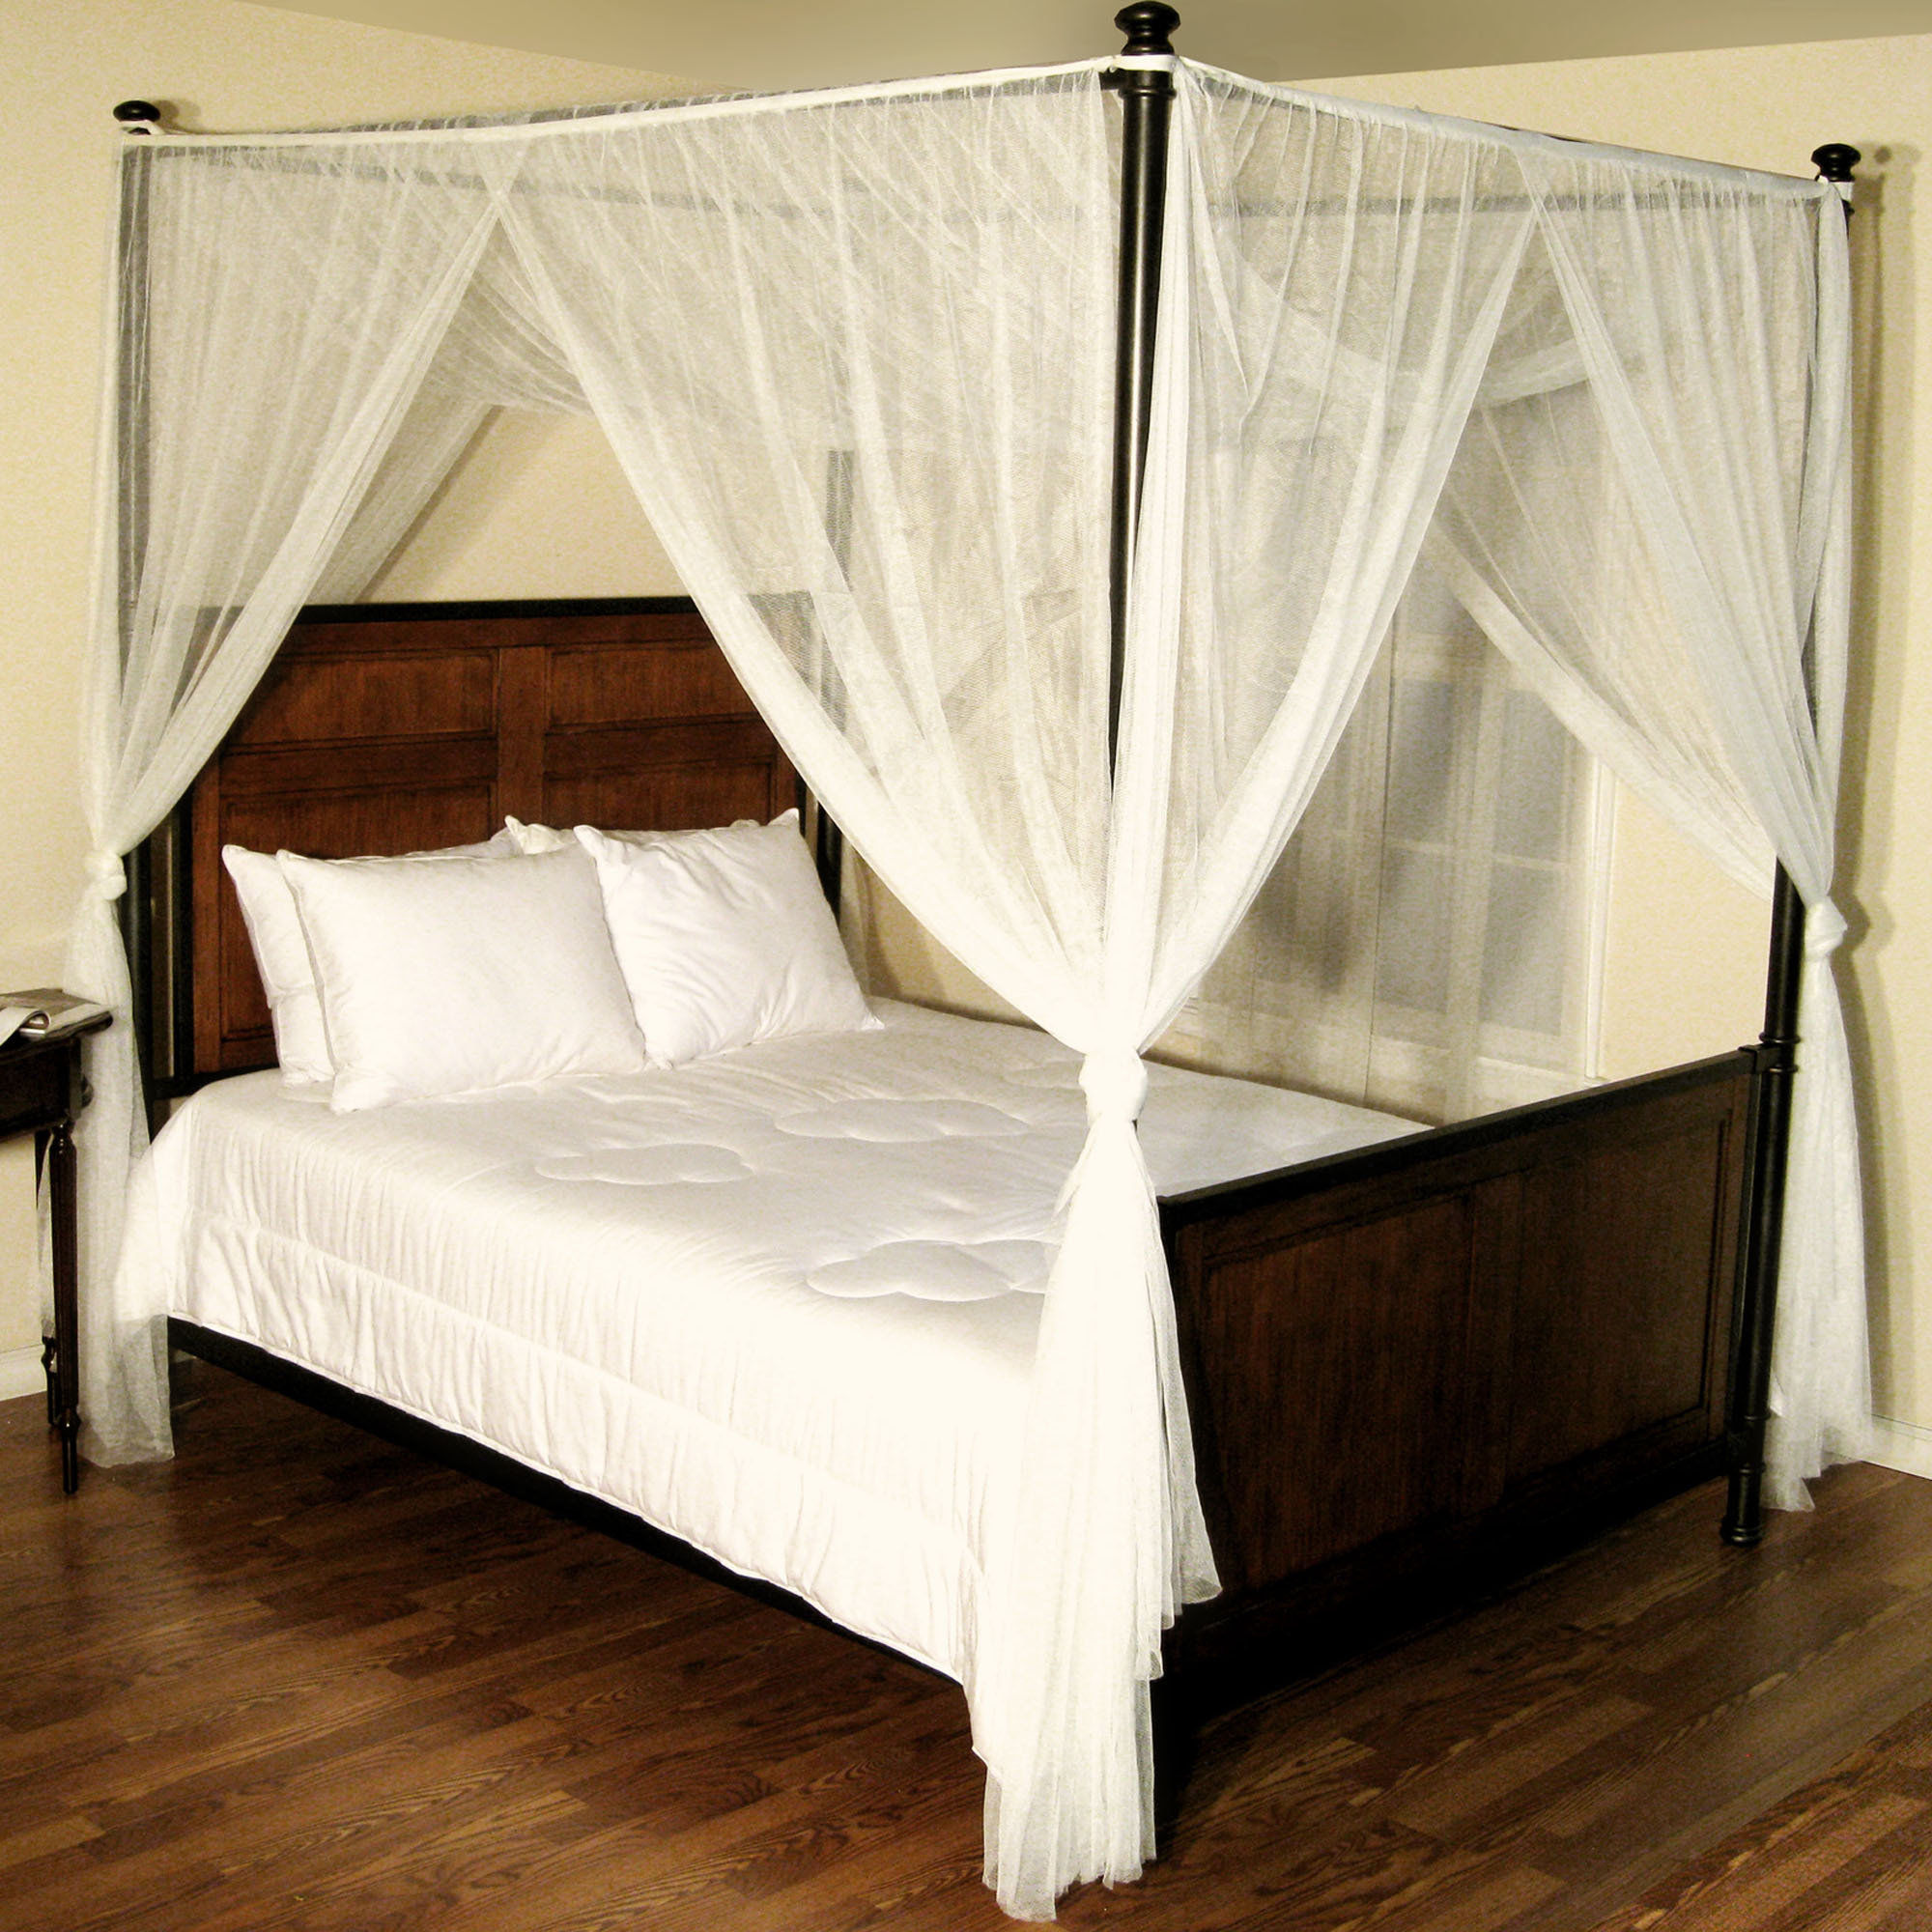 Curtains Canopy Bed | Canopy Bed Curtains | Curtains for Canopy Bed